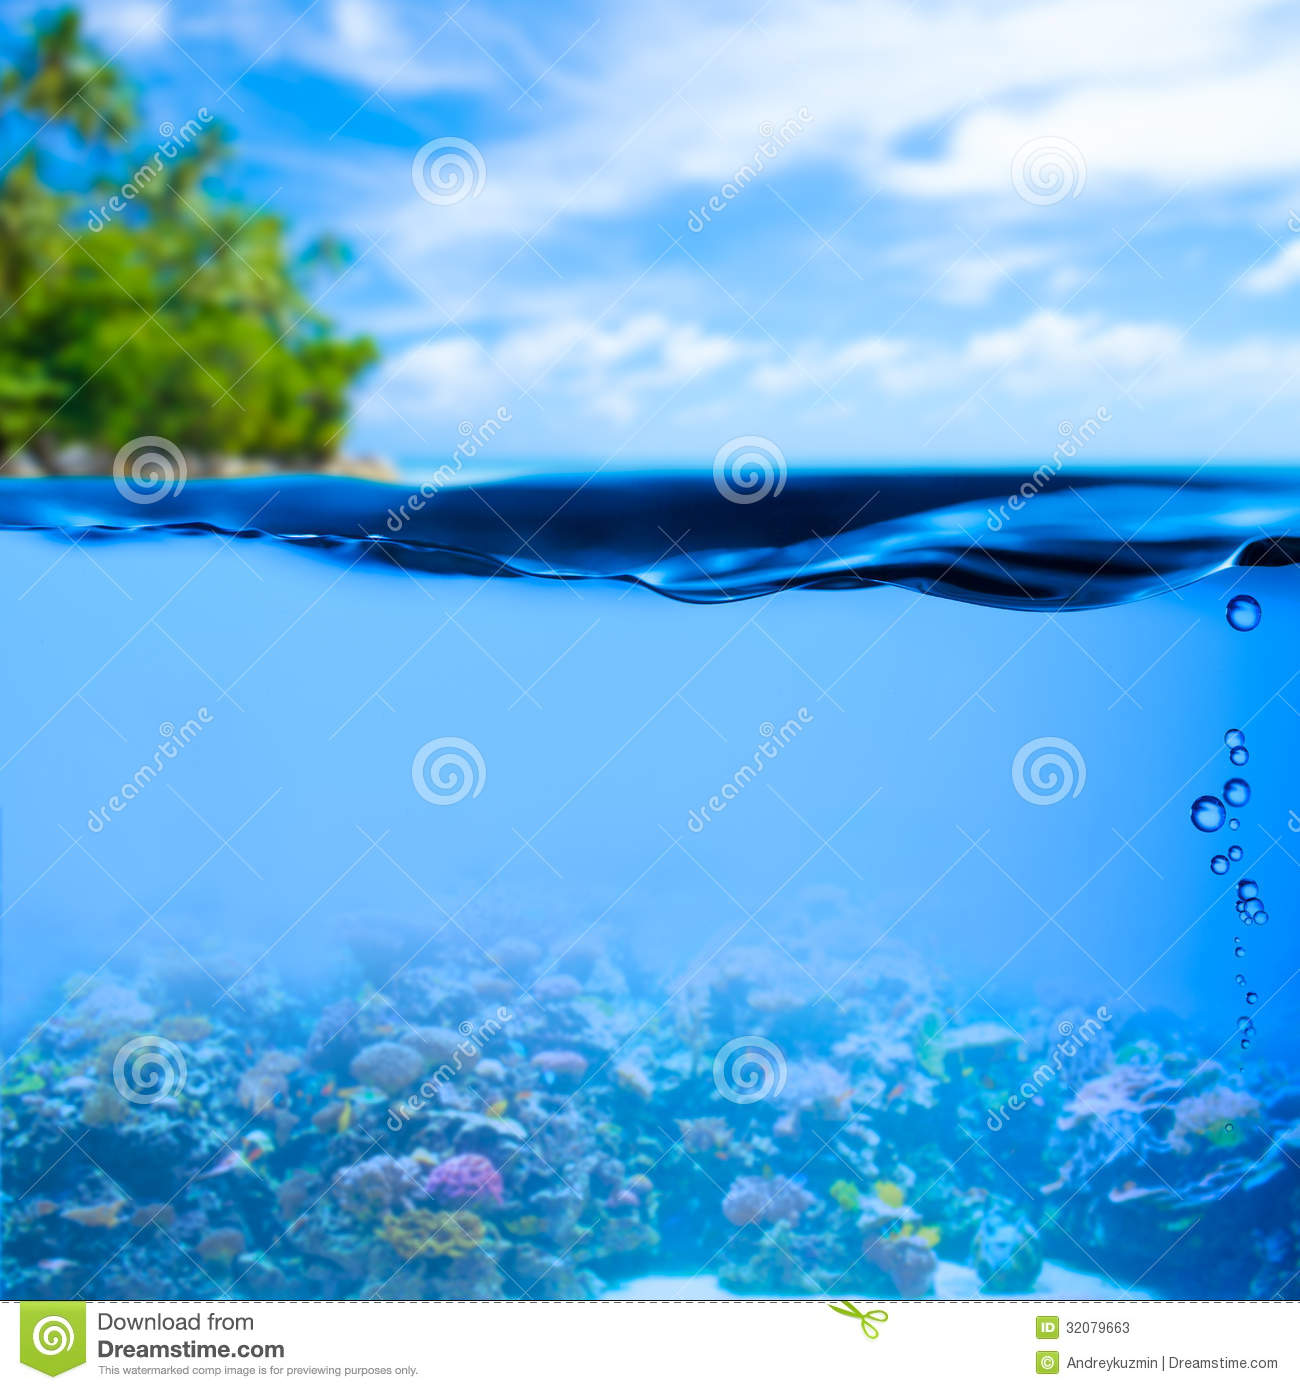 Underwater tropical sea water surface background